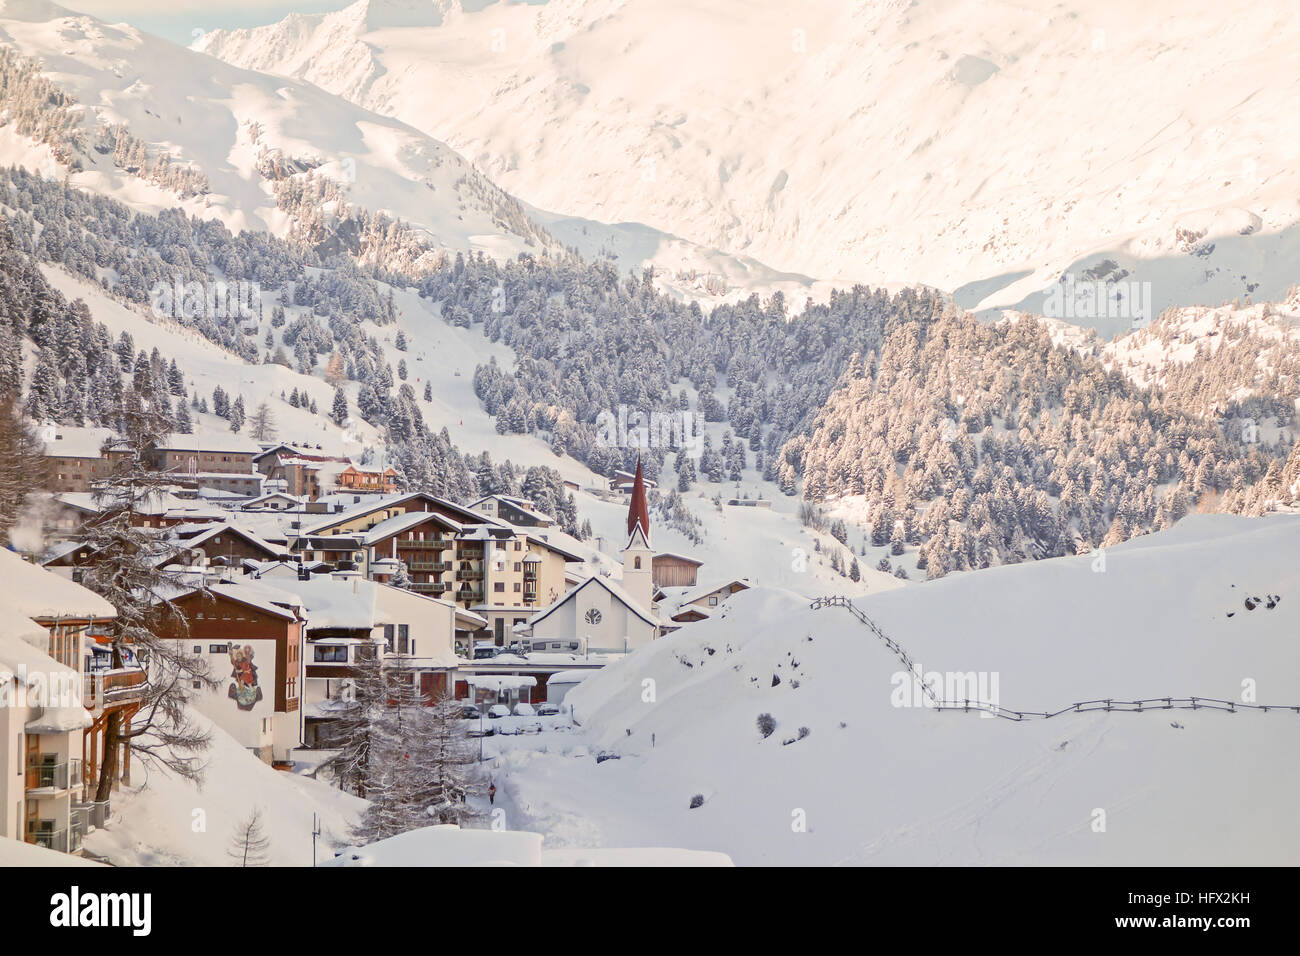 Obergurgl - an Austrian ski resort village - Stock Image